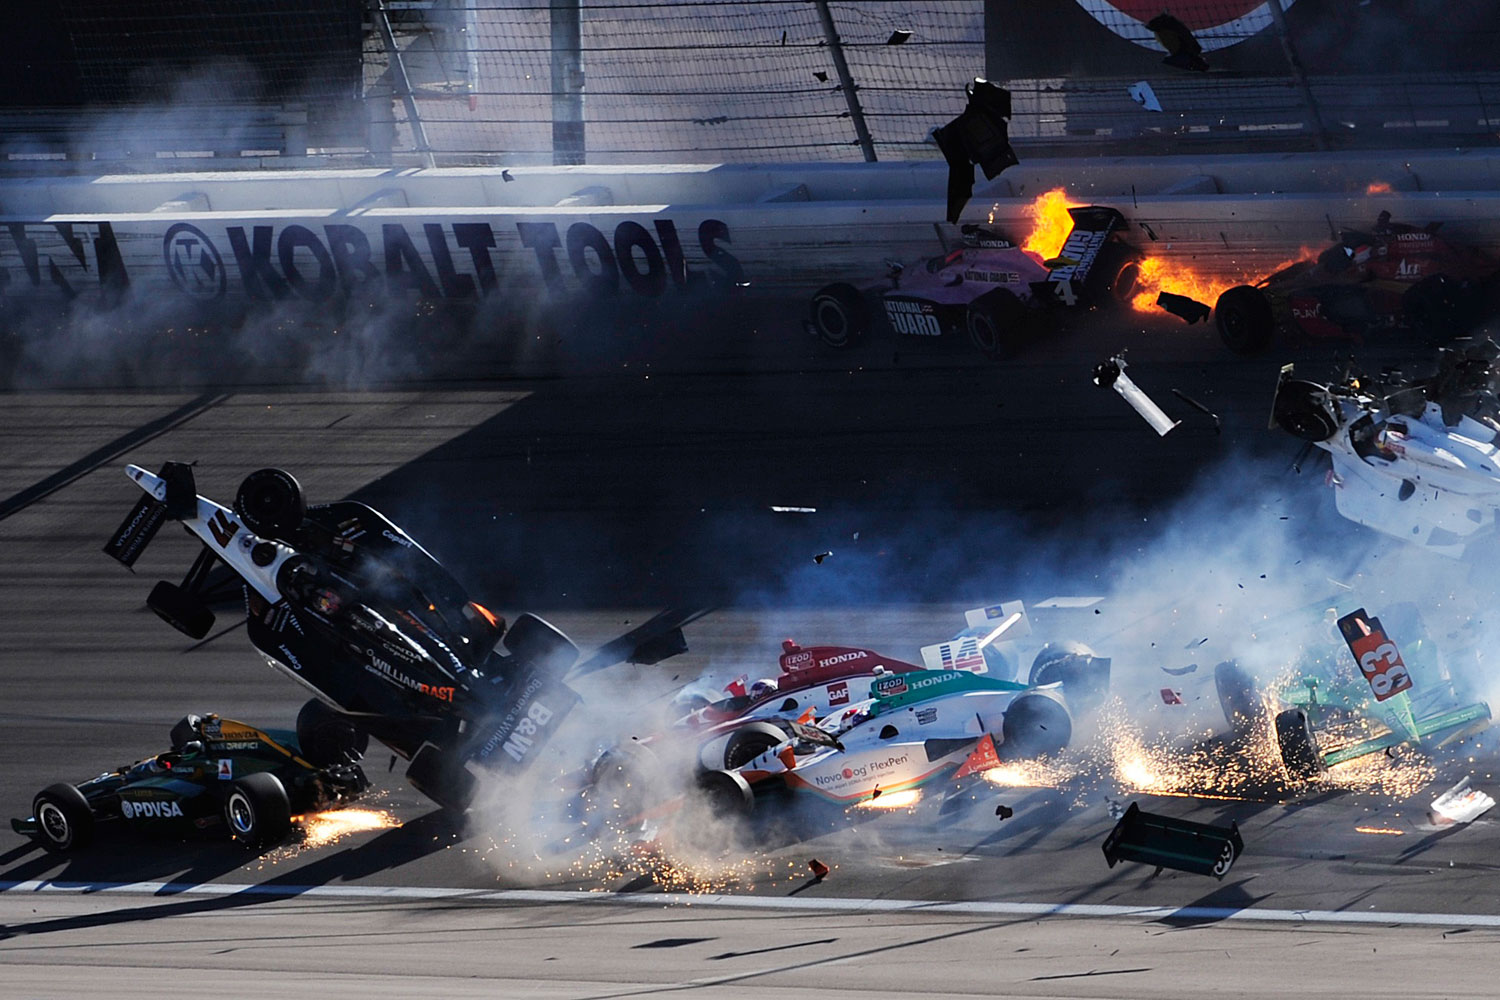 October 16, 2011. A horrifying 15-car crash cut short the IndyCar World Championship in Las Vegas. The fiery pileup, blamed on unsafe track conditions, claimed the life of driver Dan Wheldon, in car 77.